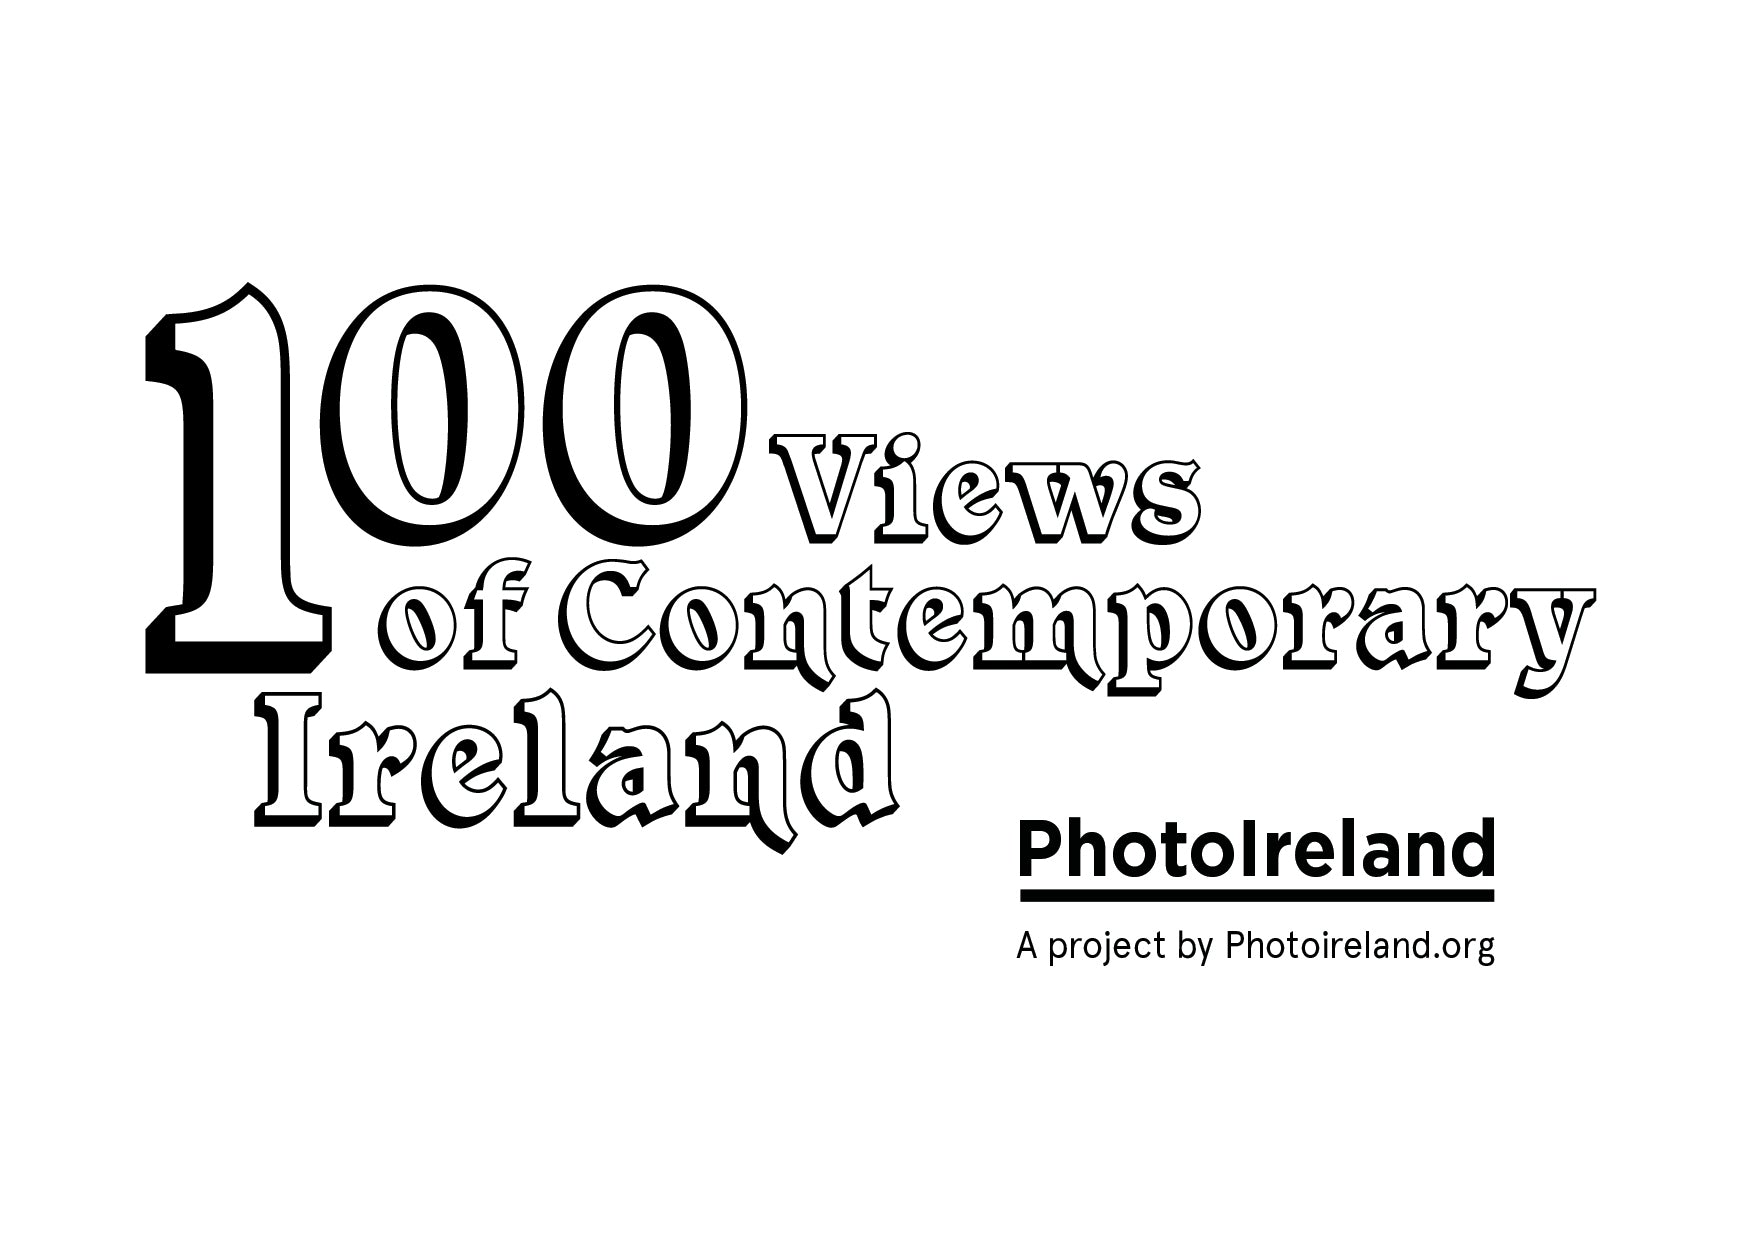 Becks Butler, 100 Views of Contemporary Ireland